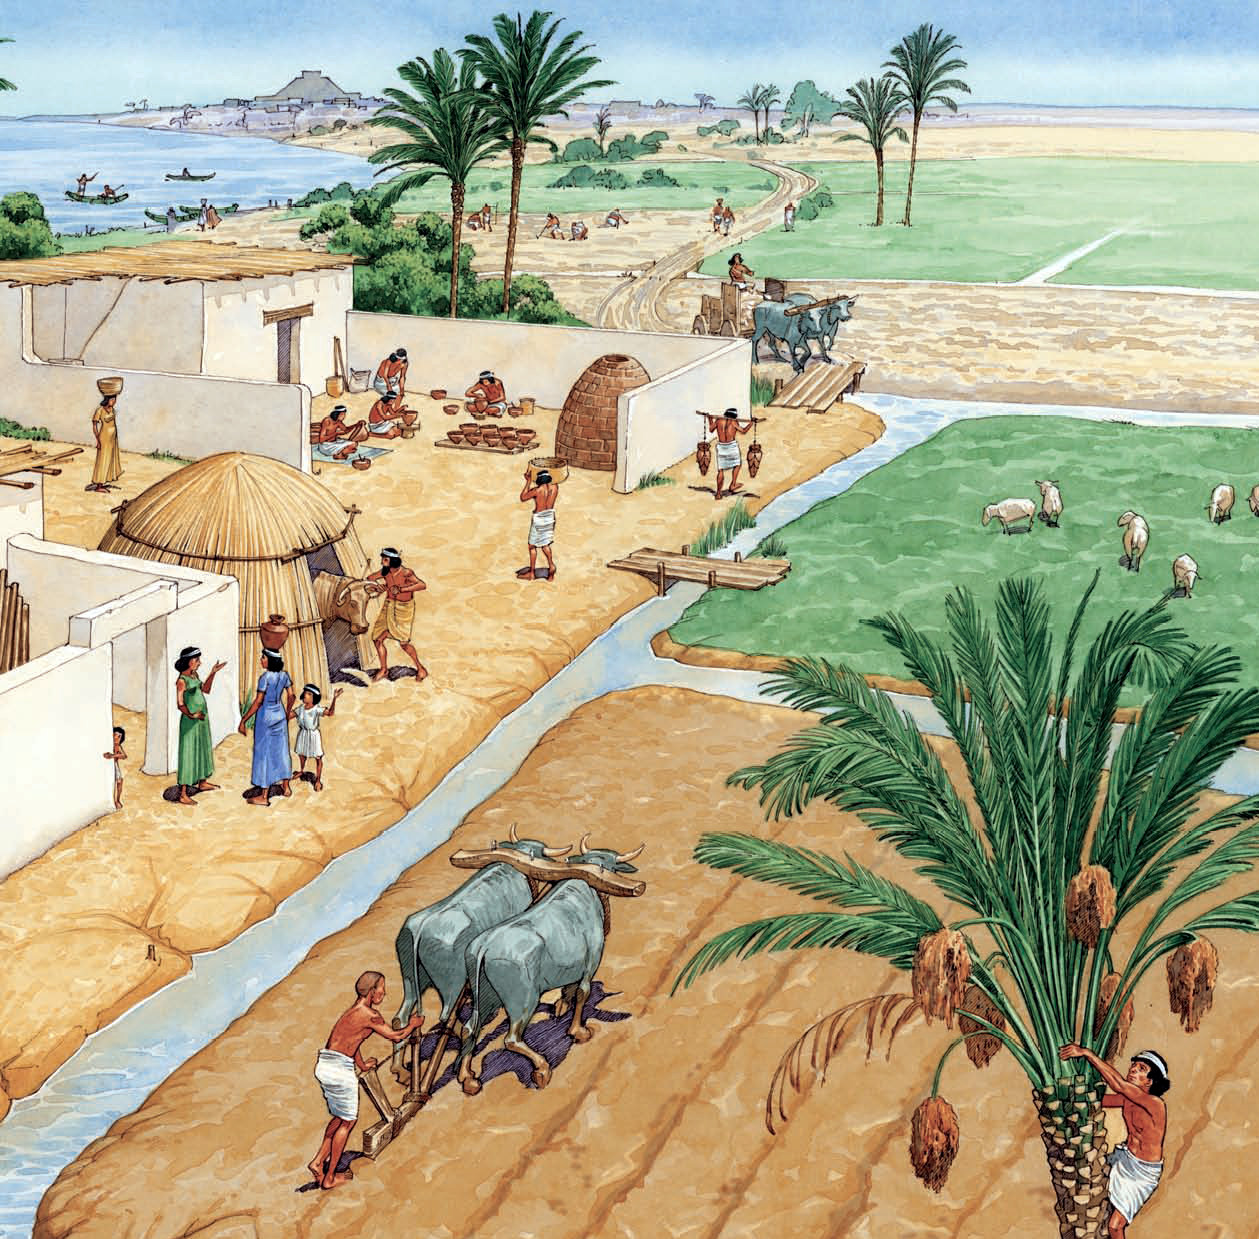 civilization in mesopotamia Several factors played a part in the development of early civilizations in mesopotamia, but the most important factor was its location mesopotamia is situated.